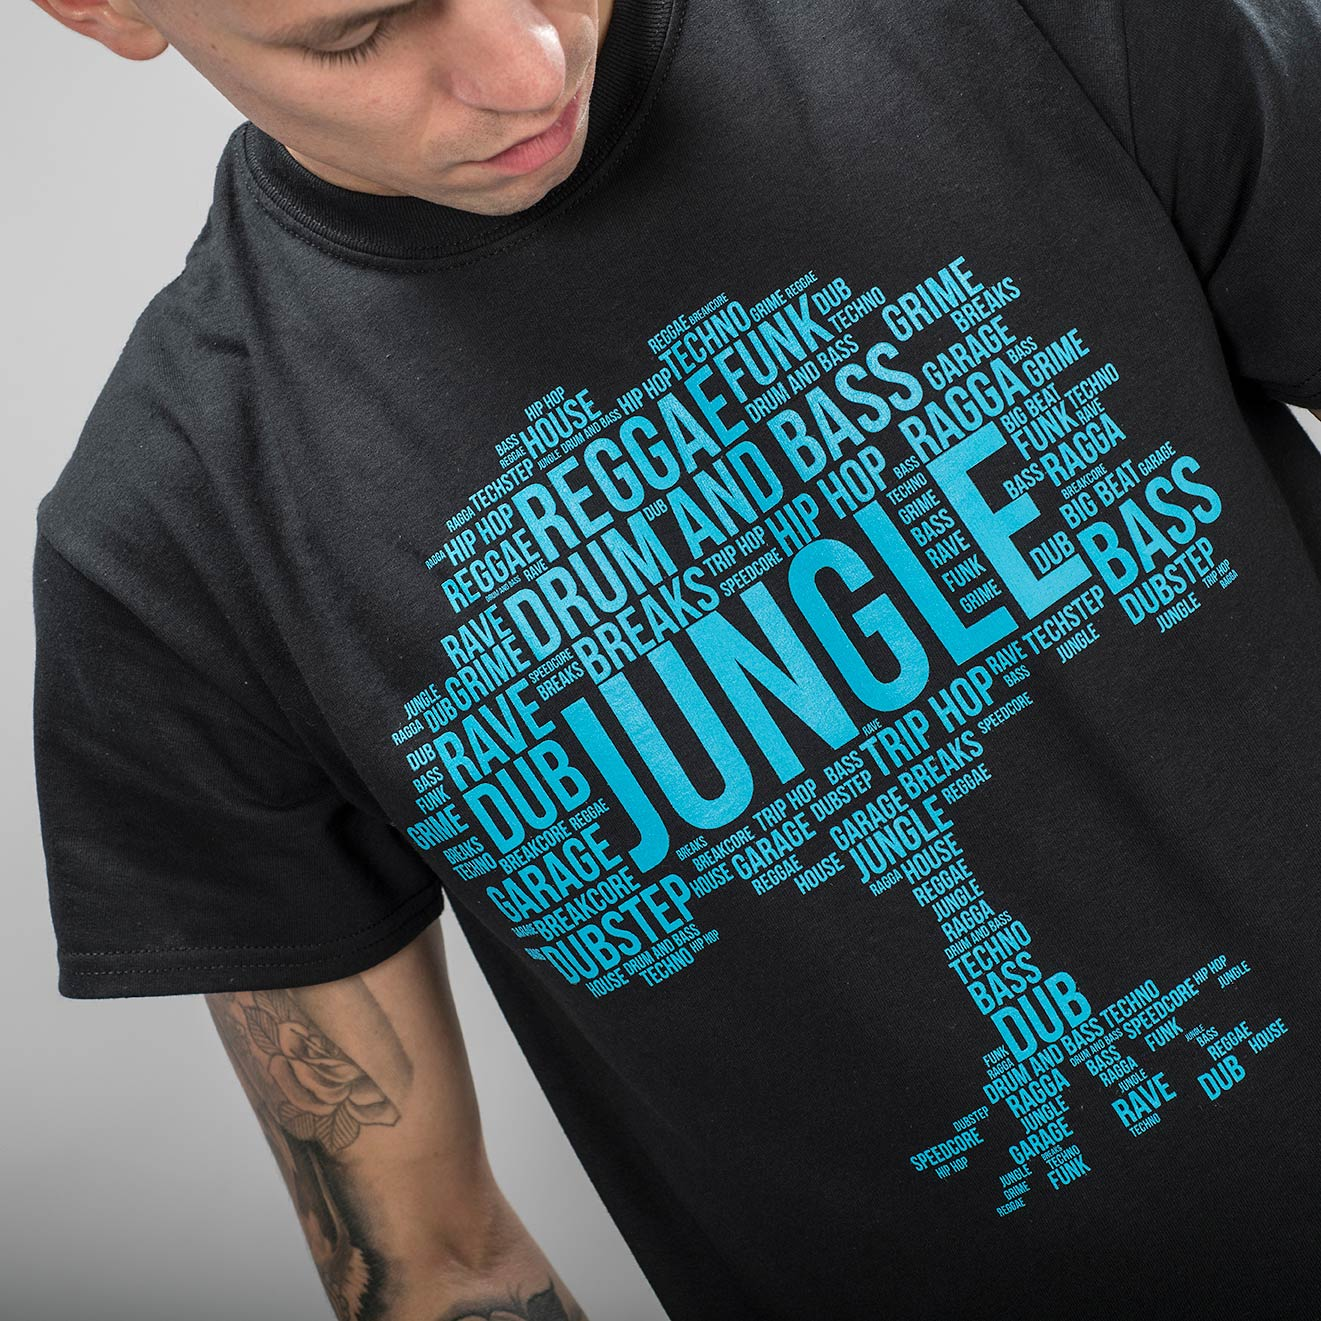 Black Junglist Roots Tee design close up